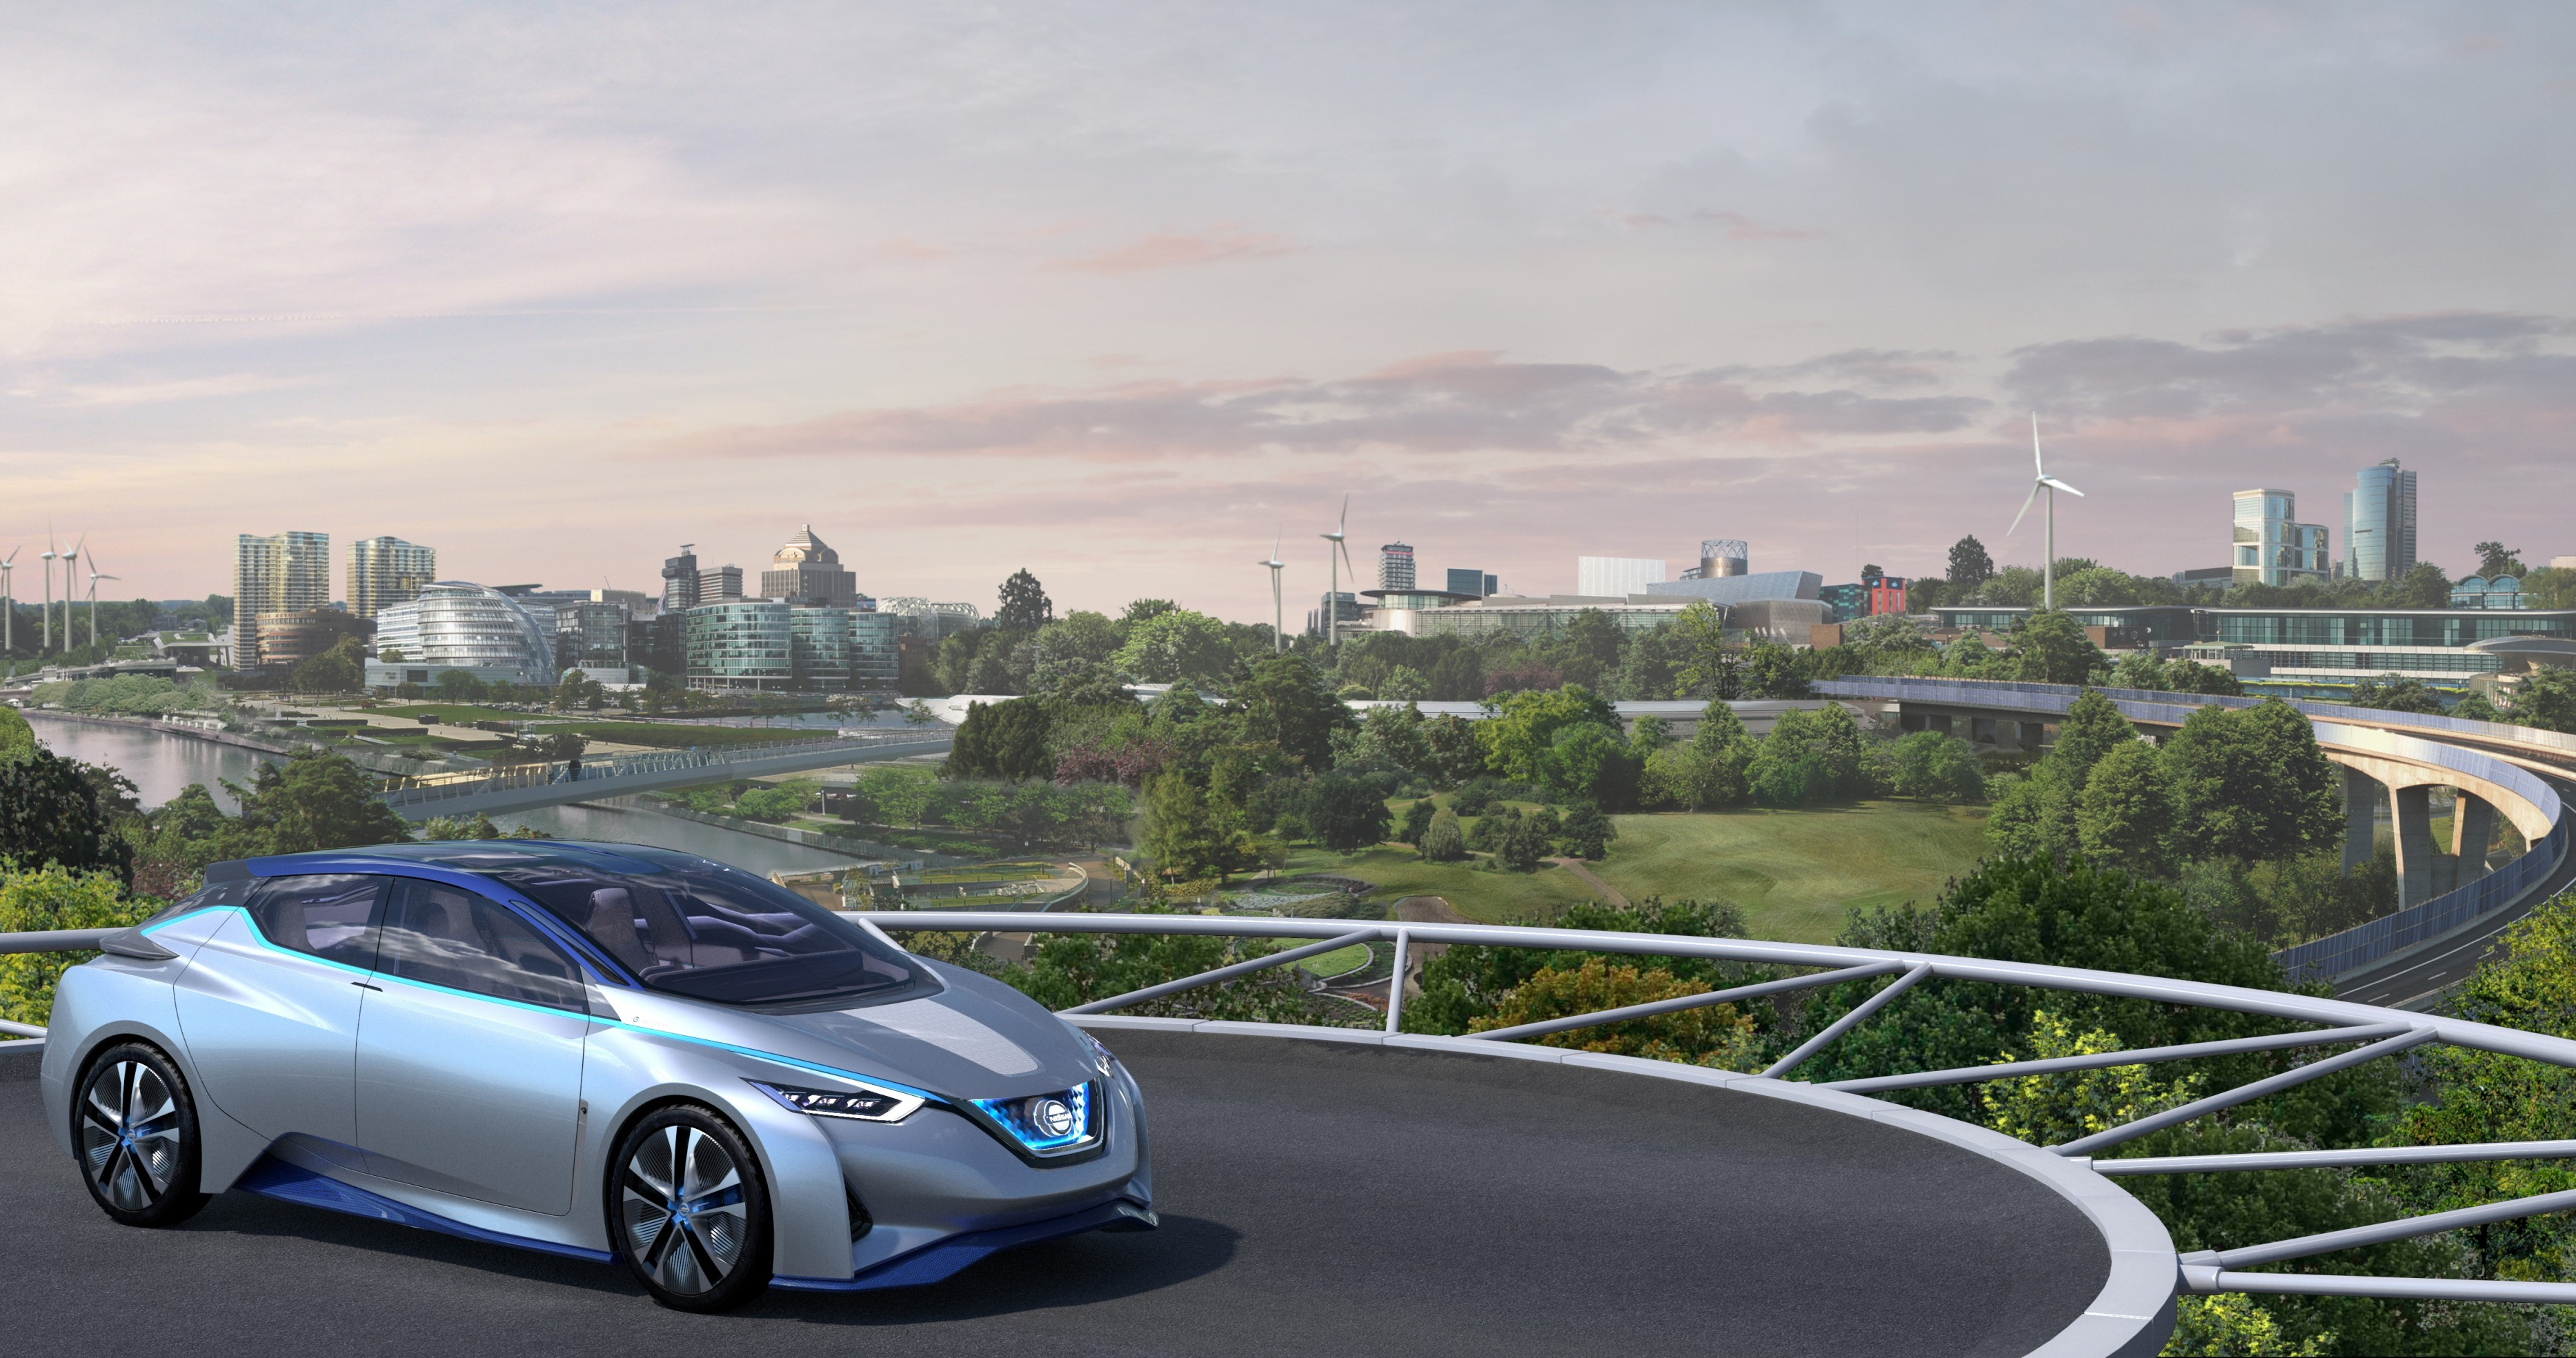 Nissan fuel station of the future concept